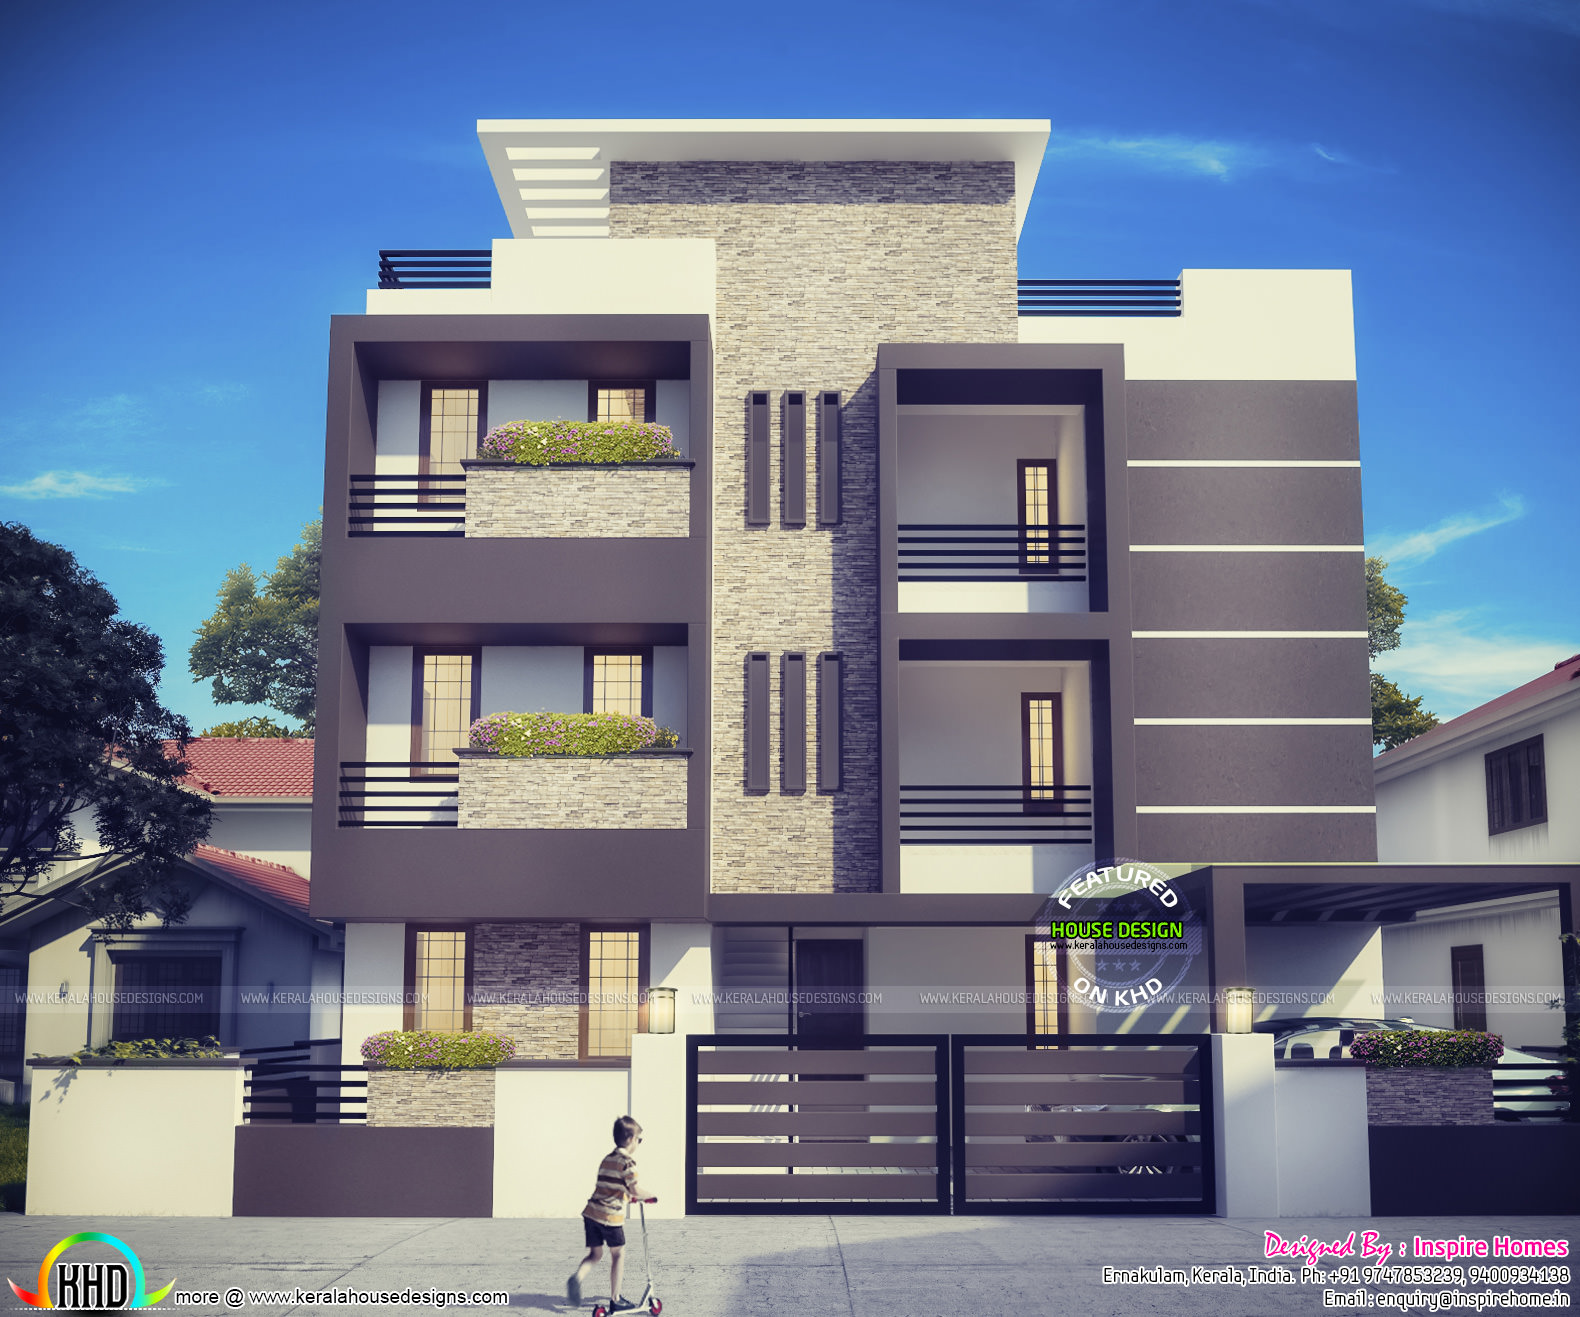 Contemporary Three Storied Residential Building | Kerala home design on mediterranean house plans, decorative house plans, title 24 house plans, architectural house plans, home house plans, house plans house plans, high density house plans, custom home plans, residential home kits, canal front house plans, residential building, 2400 sqft house plans, luxury 4 bedroom house plans, storefront house plans, simple house plans, construction plans, roadside house plans, apps for house plans, simplex house plans, unique small house plans,